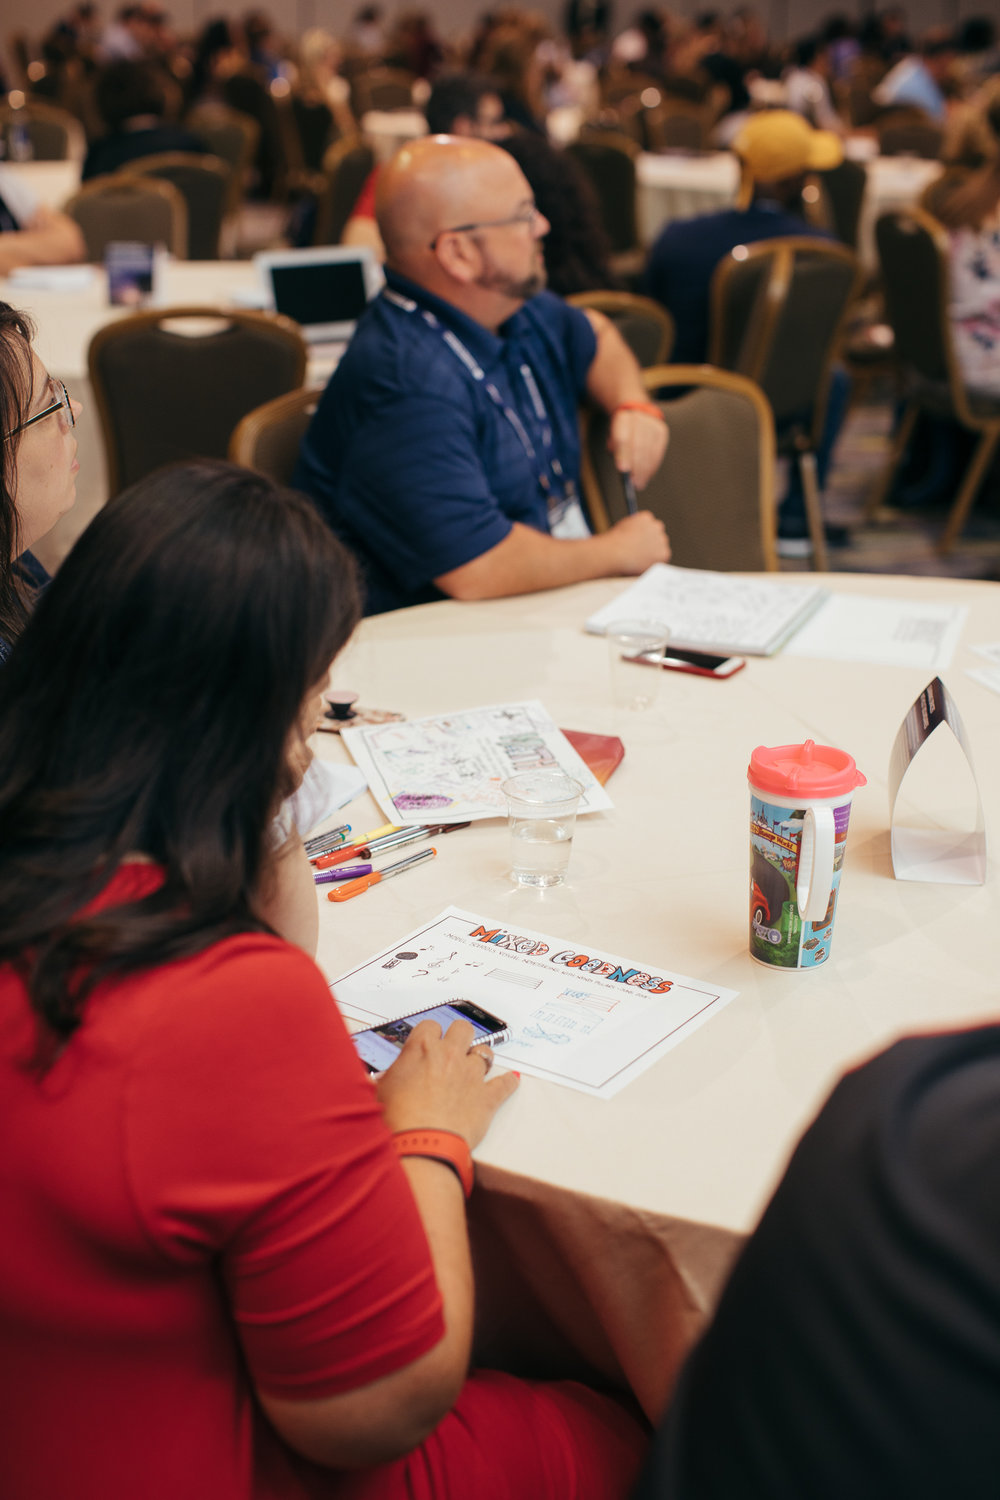 live event commercial photography brand storytelling for education florida conference photographer ©2018abigailbobophotography-68.jpg